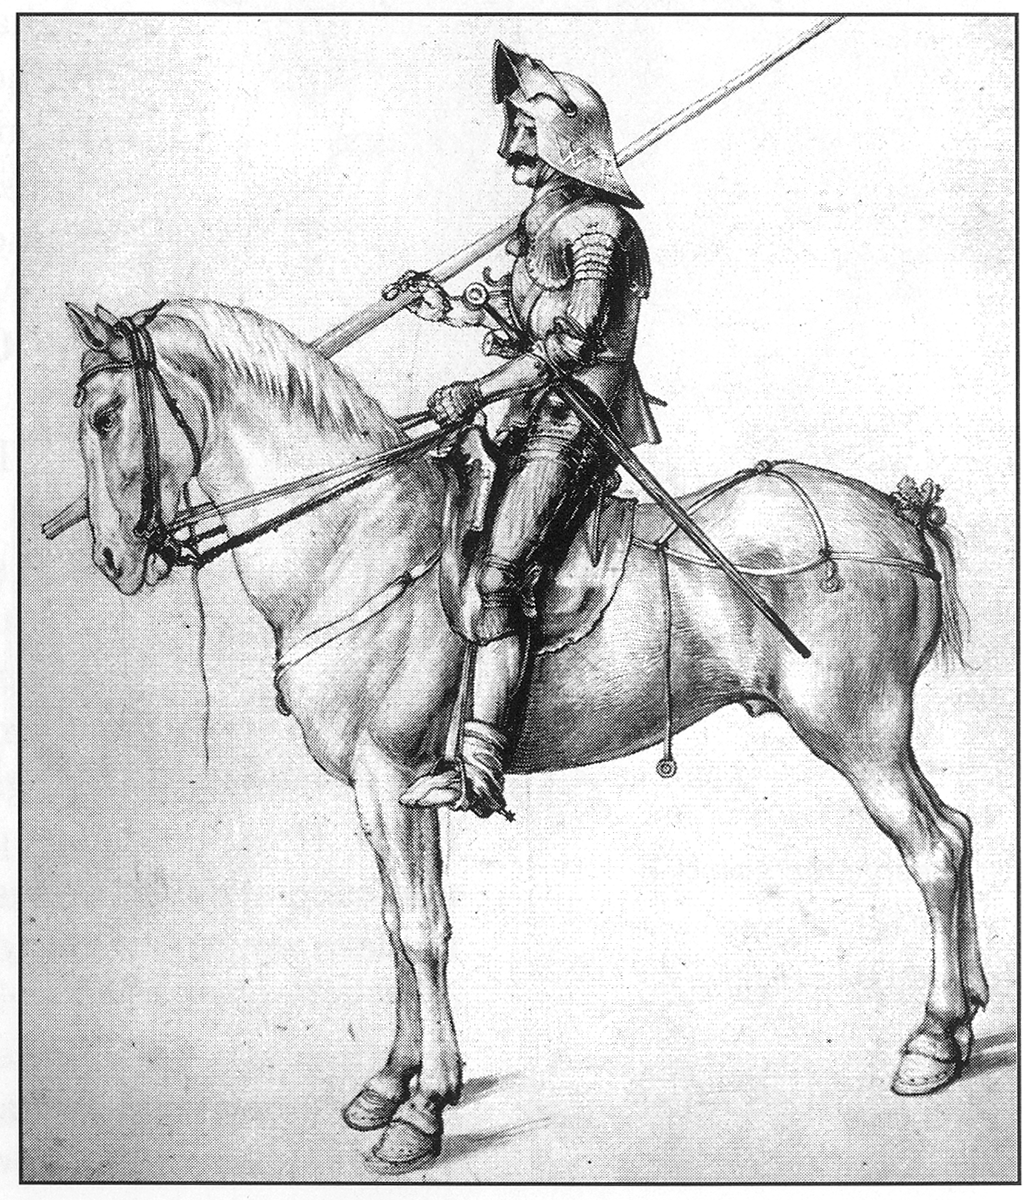 Drawing of a mounted knight prepared for battle ca. A.D. 1500 by Albrecht Durer